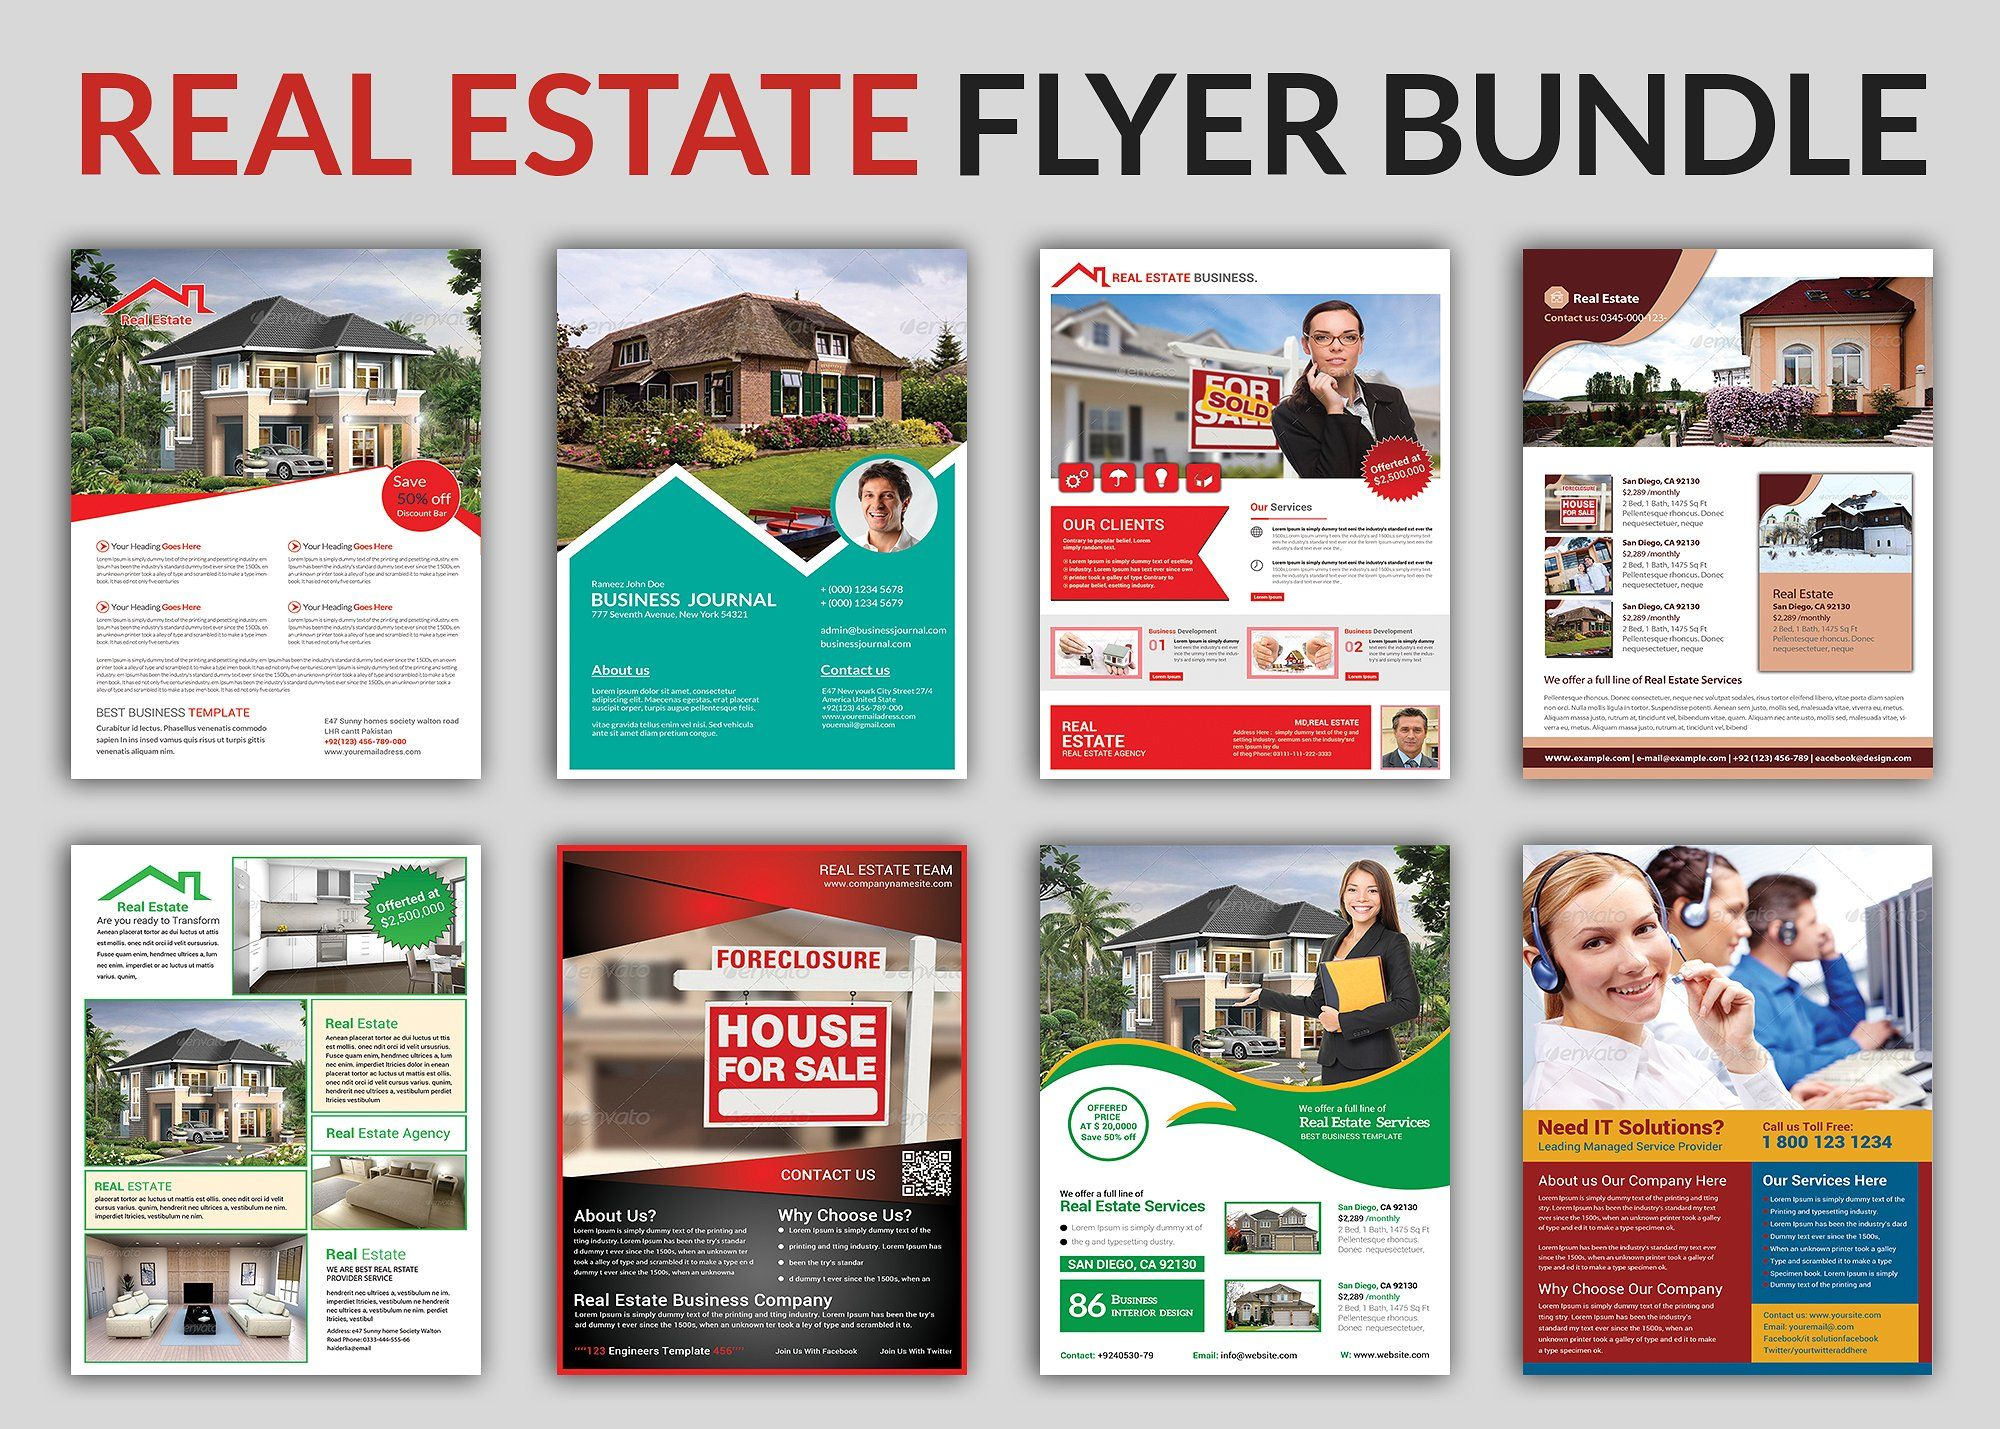 Real Estate Flyer Bundle Templates By Afzaalgraphics On